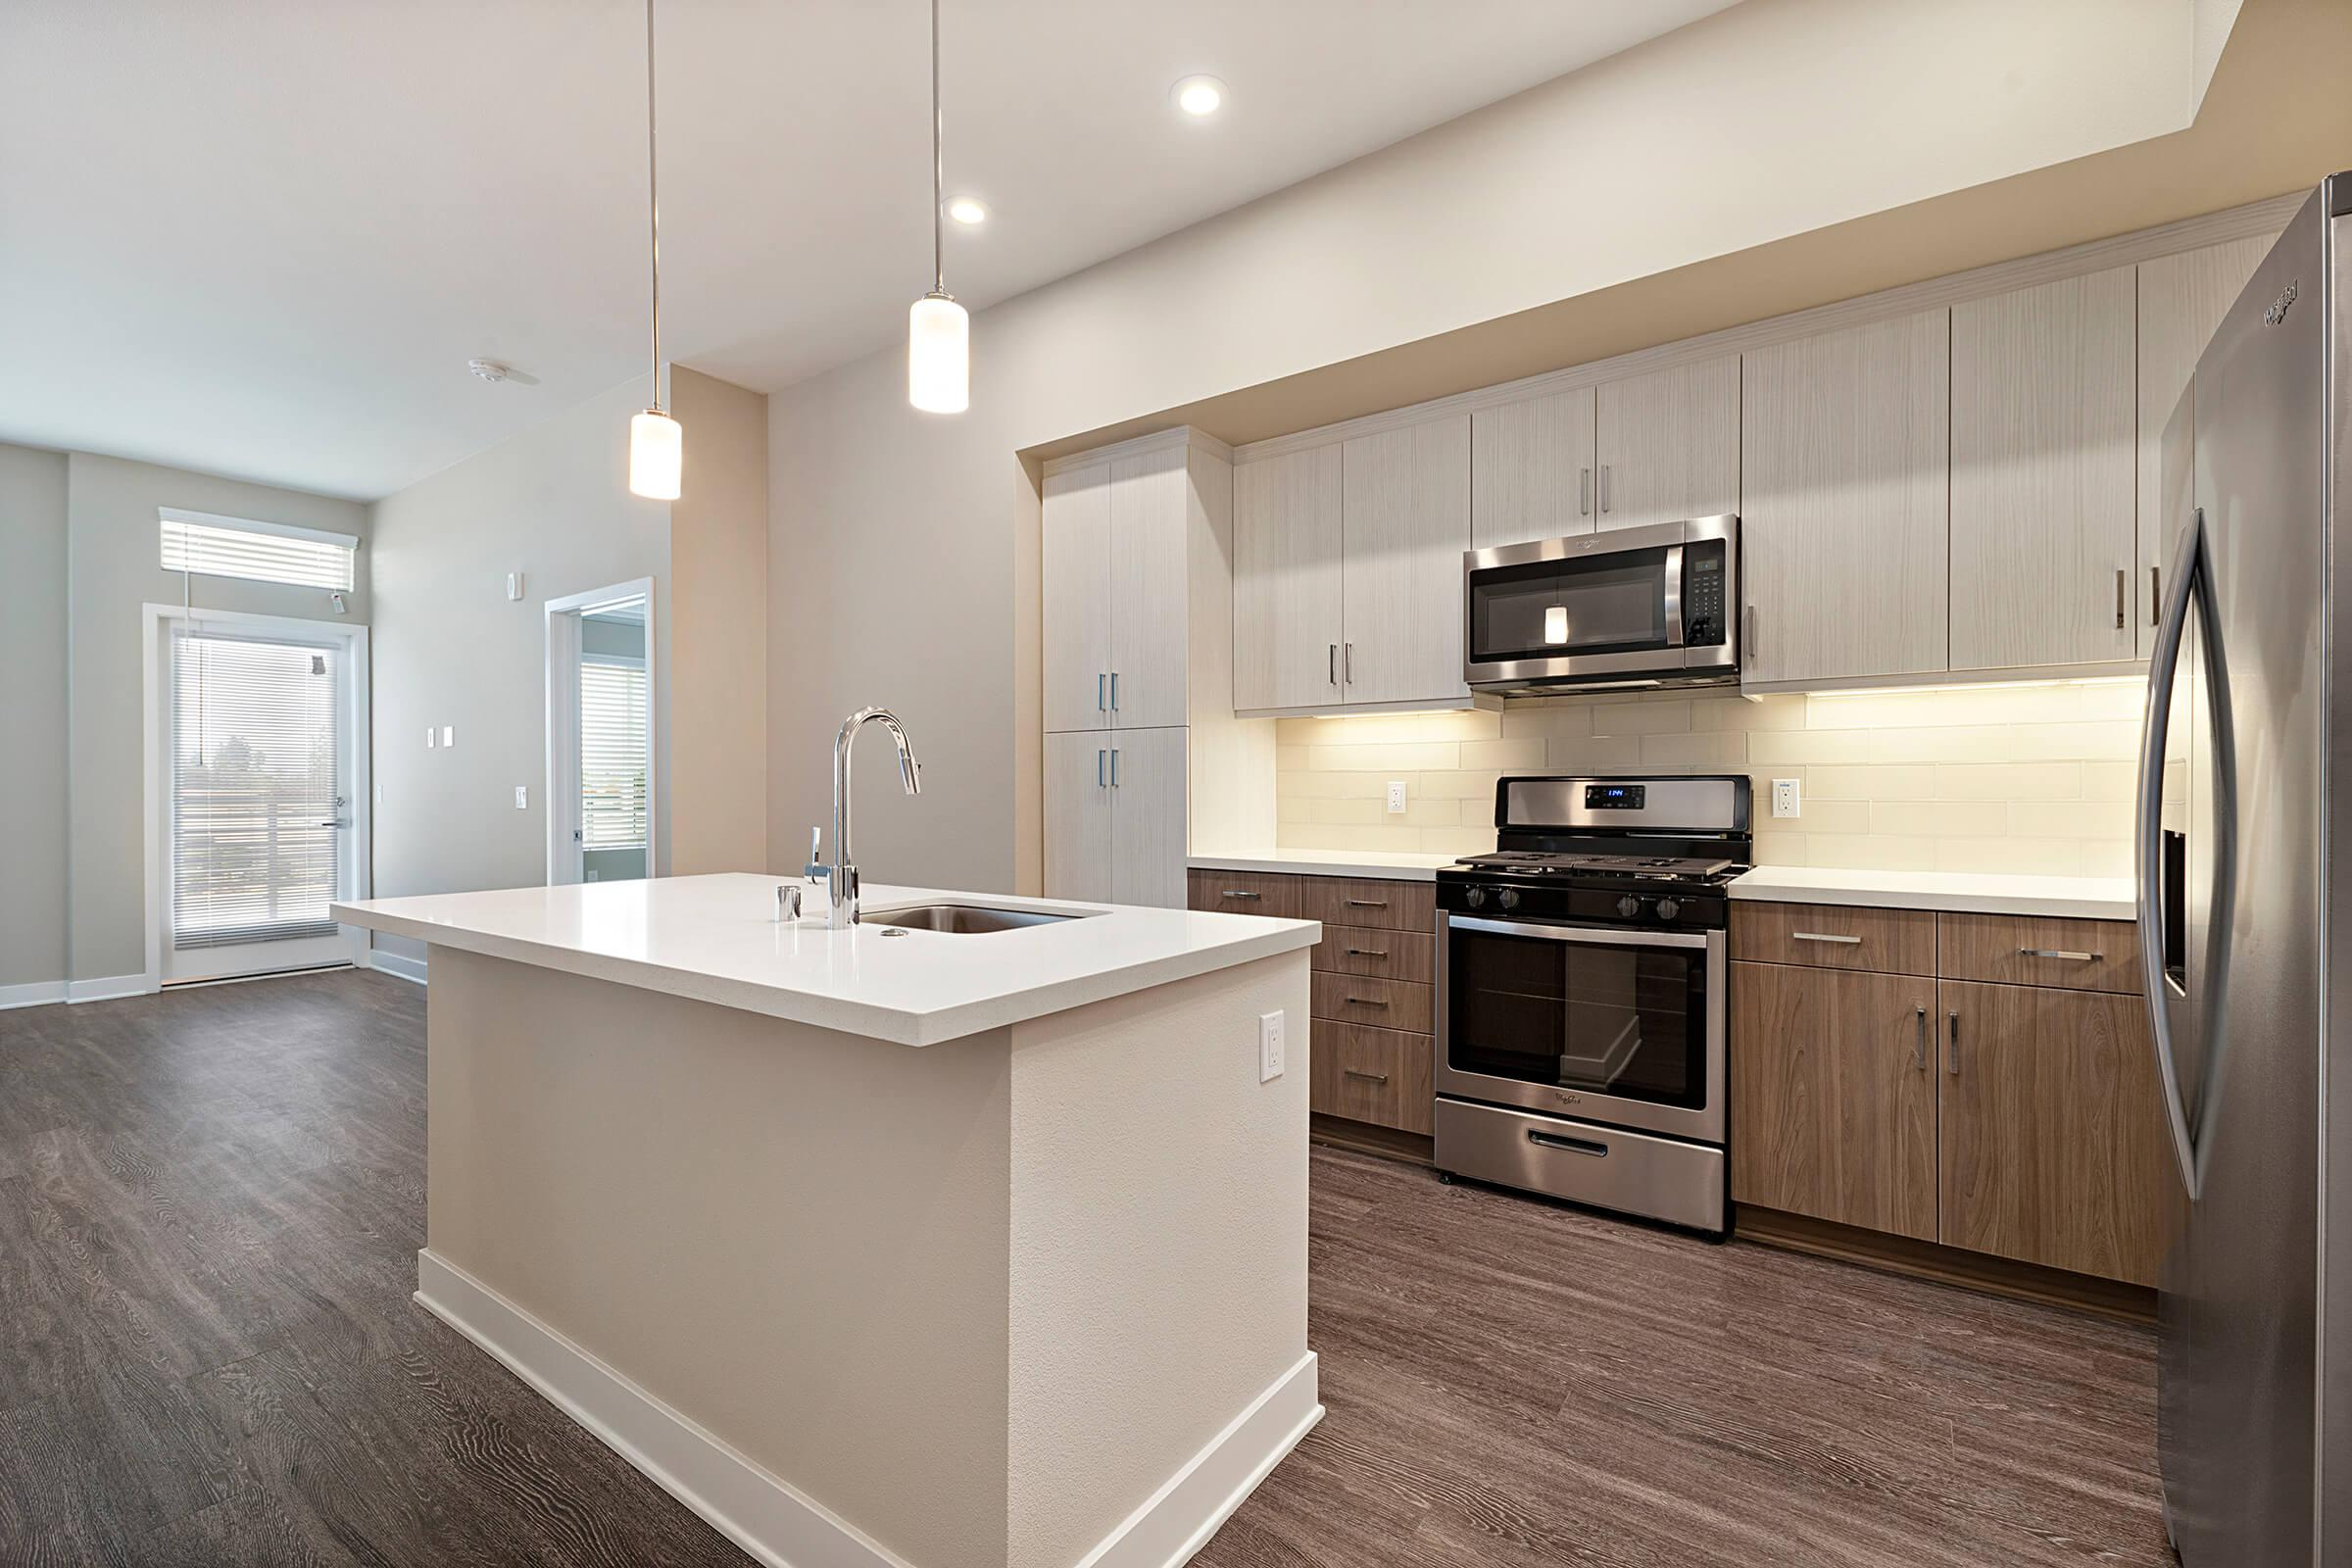 Kitchen with stainless steel appliances and an island